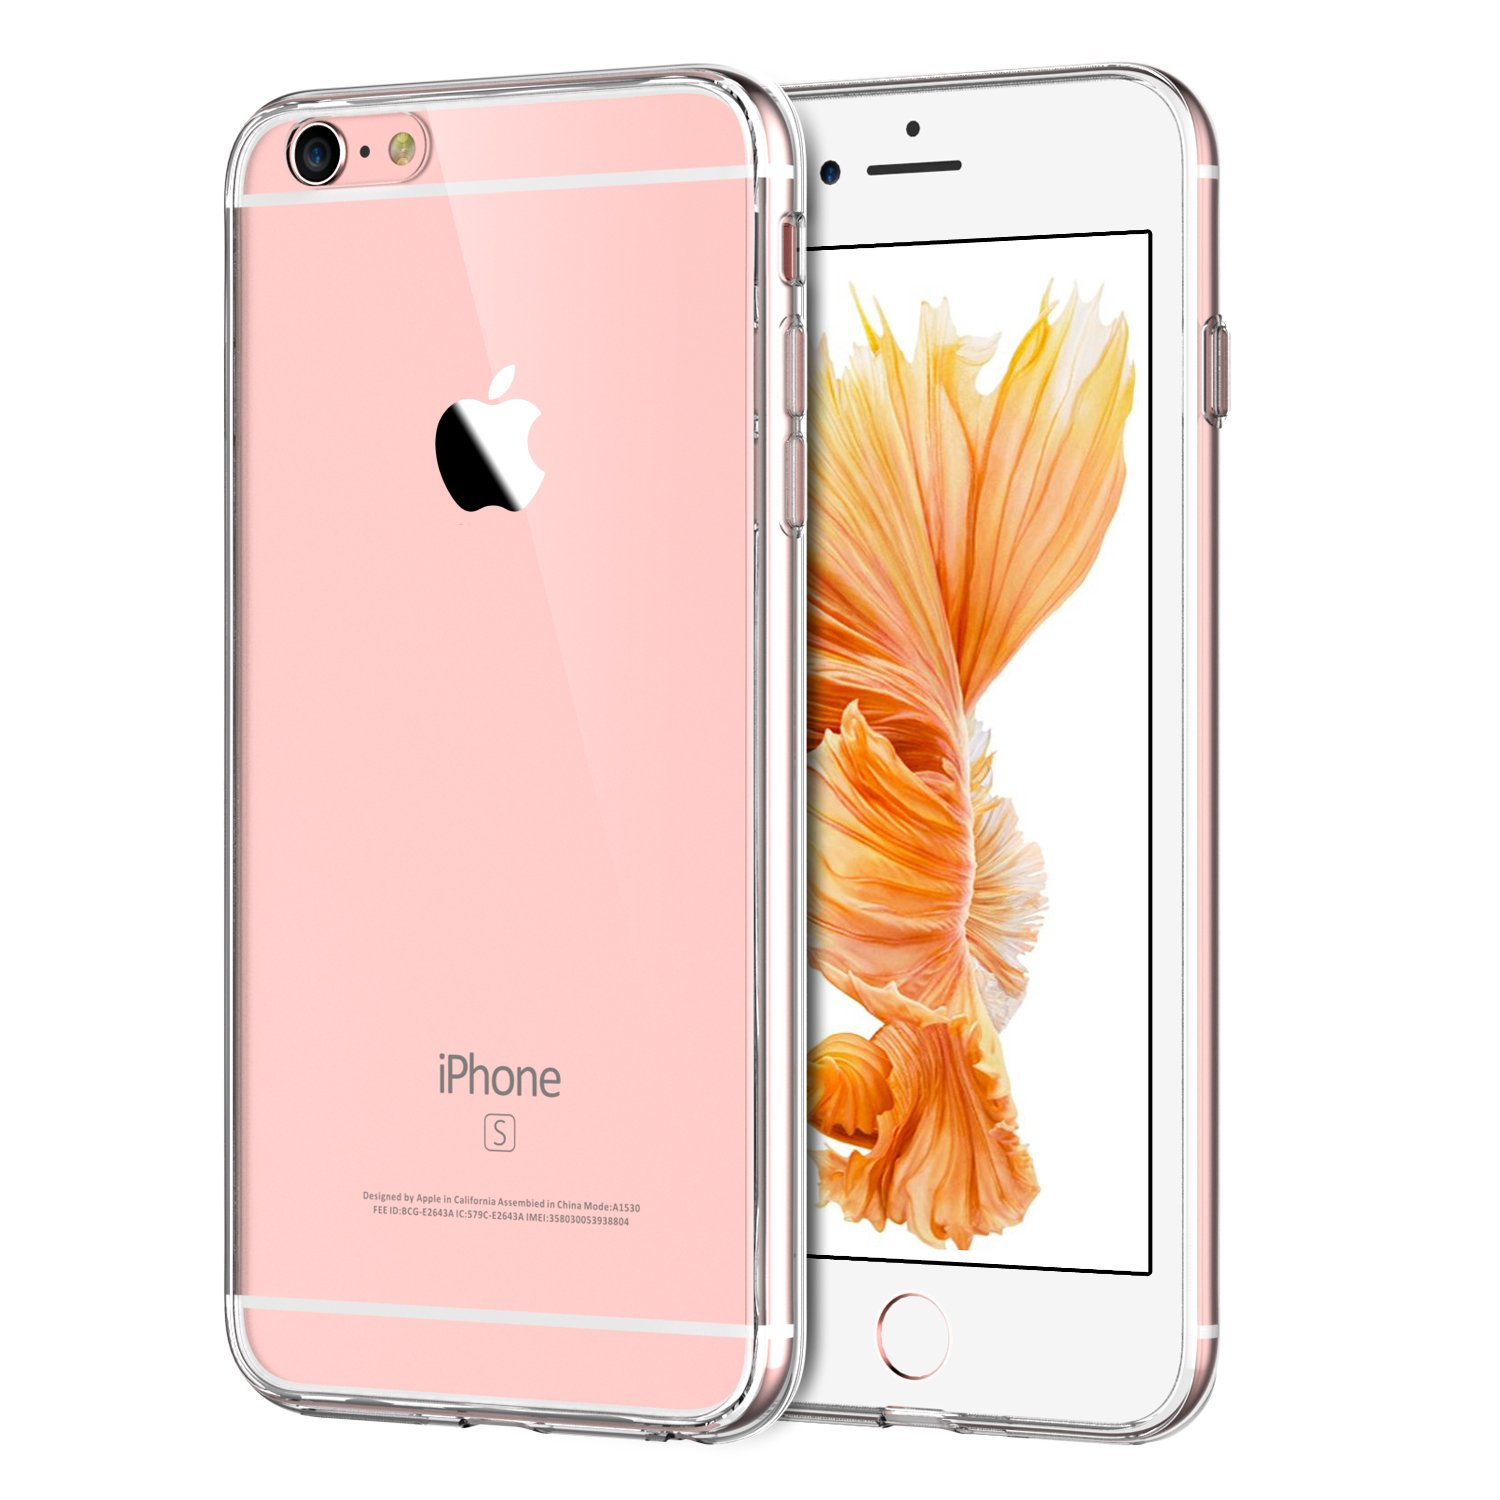 iphone 6s h lle jetech apple 6s 6 4 7 h lle tasche schutzh lle case cover ebay. Black Bedroom Furniture Sets. Home Design Ideas